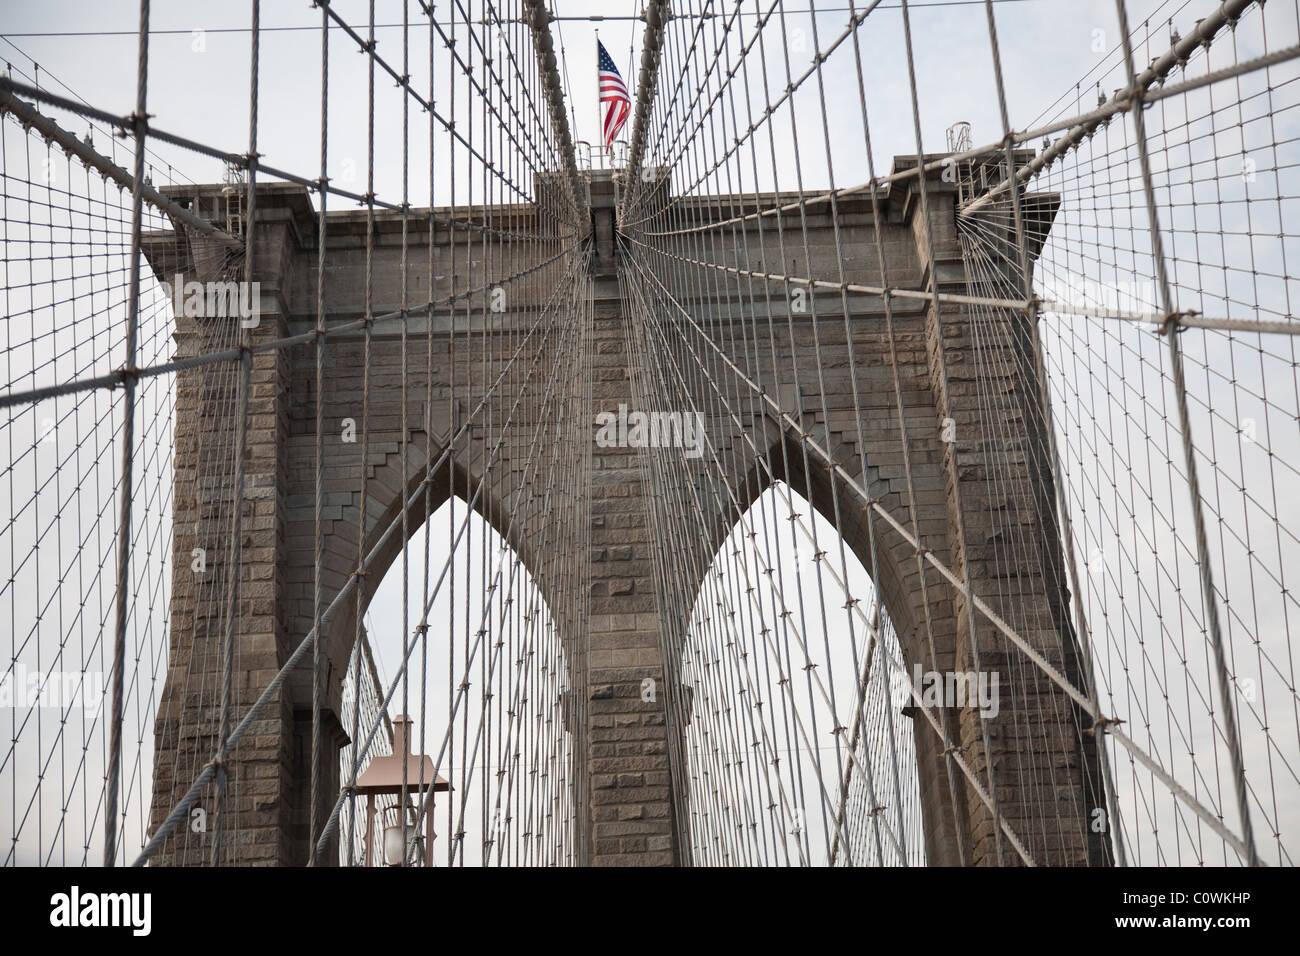 Brooklyn Bridge steelwork and arches - Stock Image